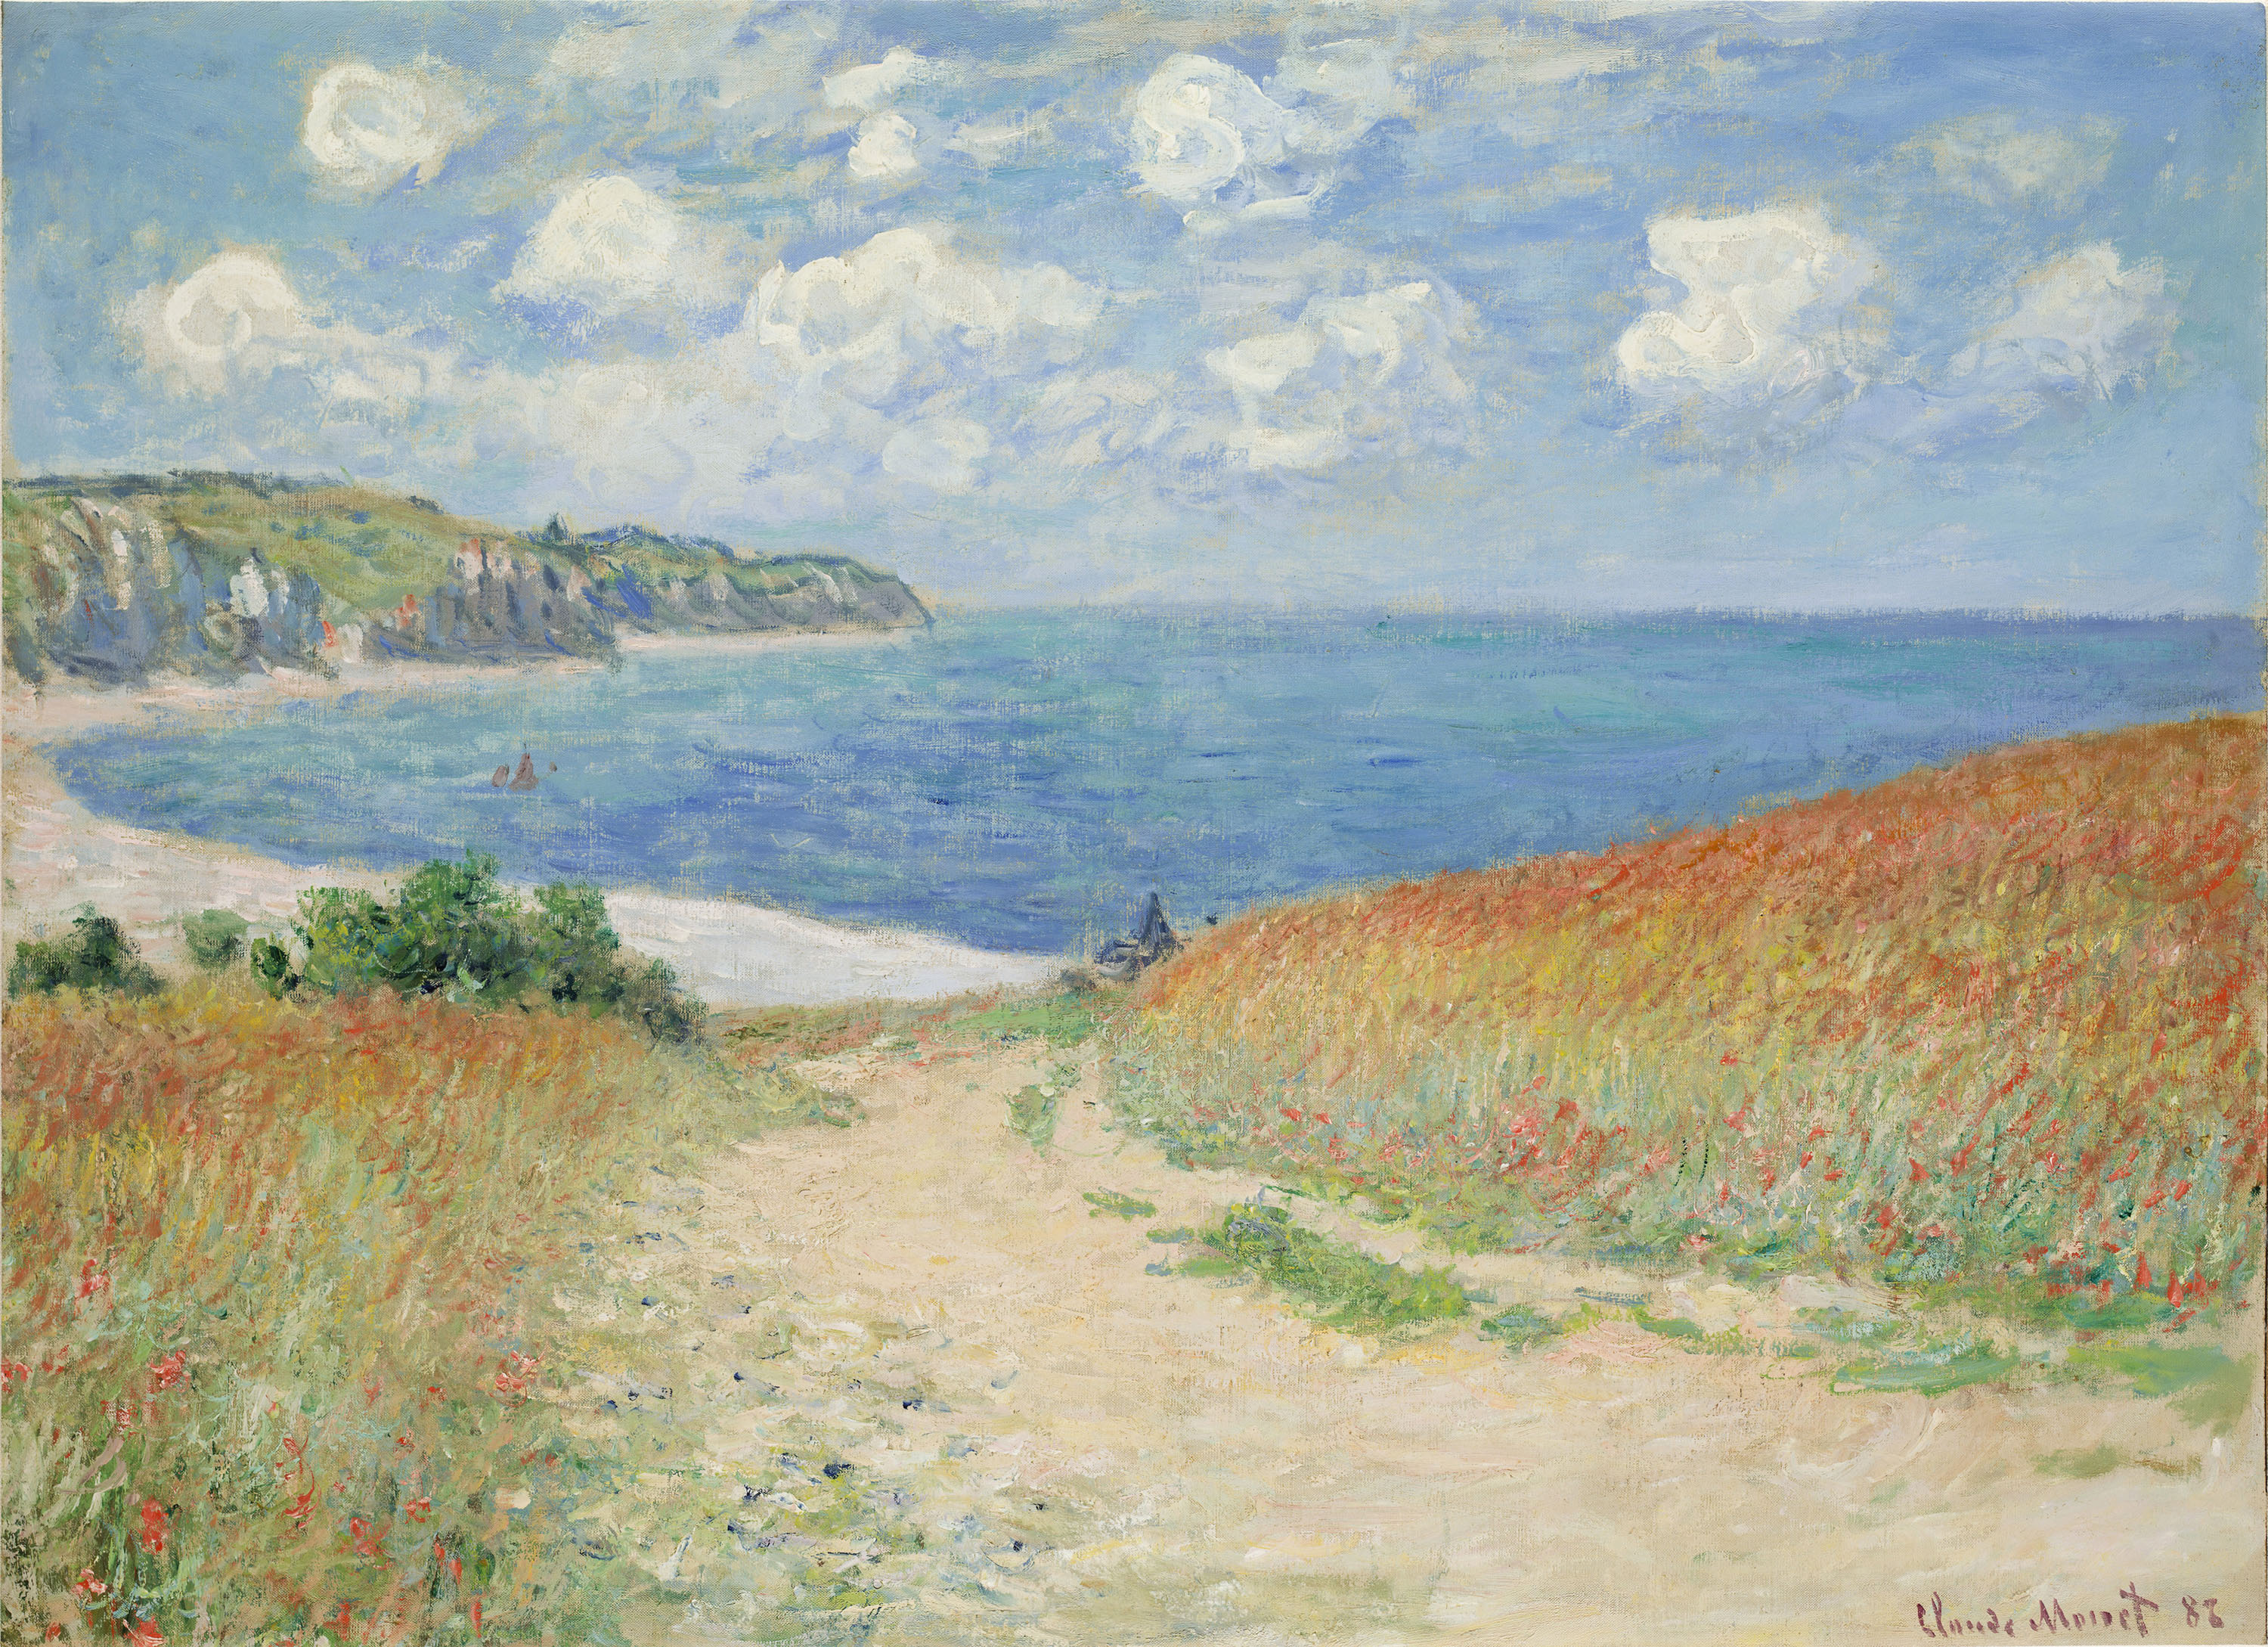 Claude Monet's Path in the Wheat Fields at Pourville, 1882.